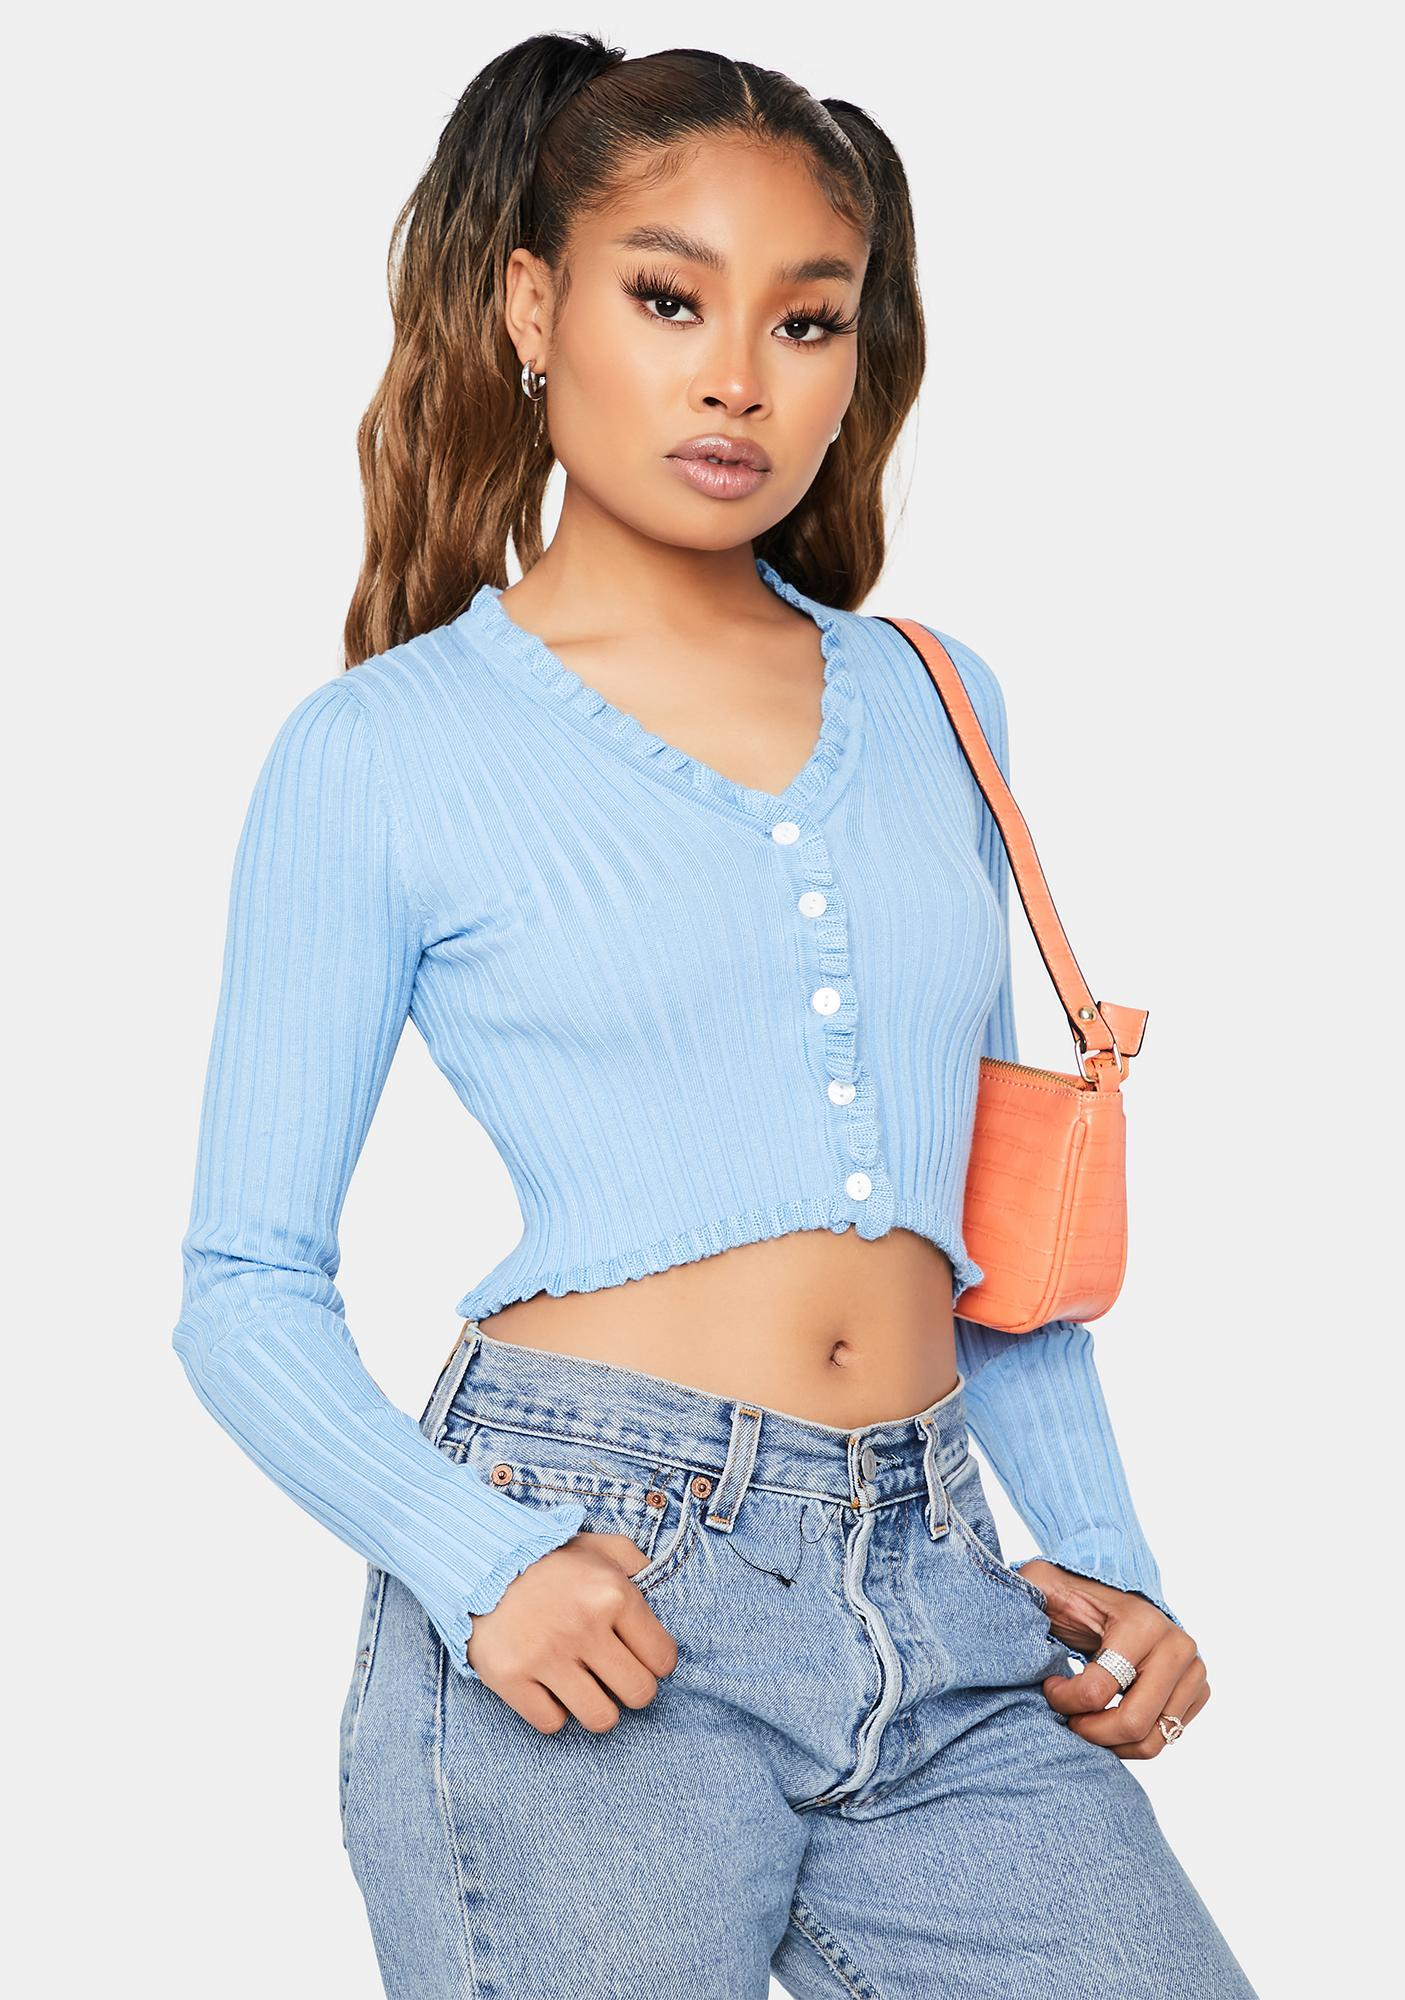 Clique on Speed Dial Cropped Sweater